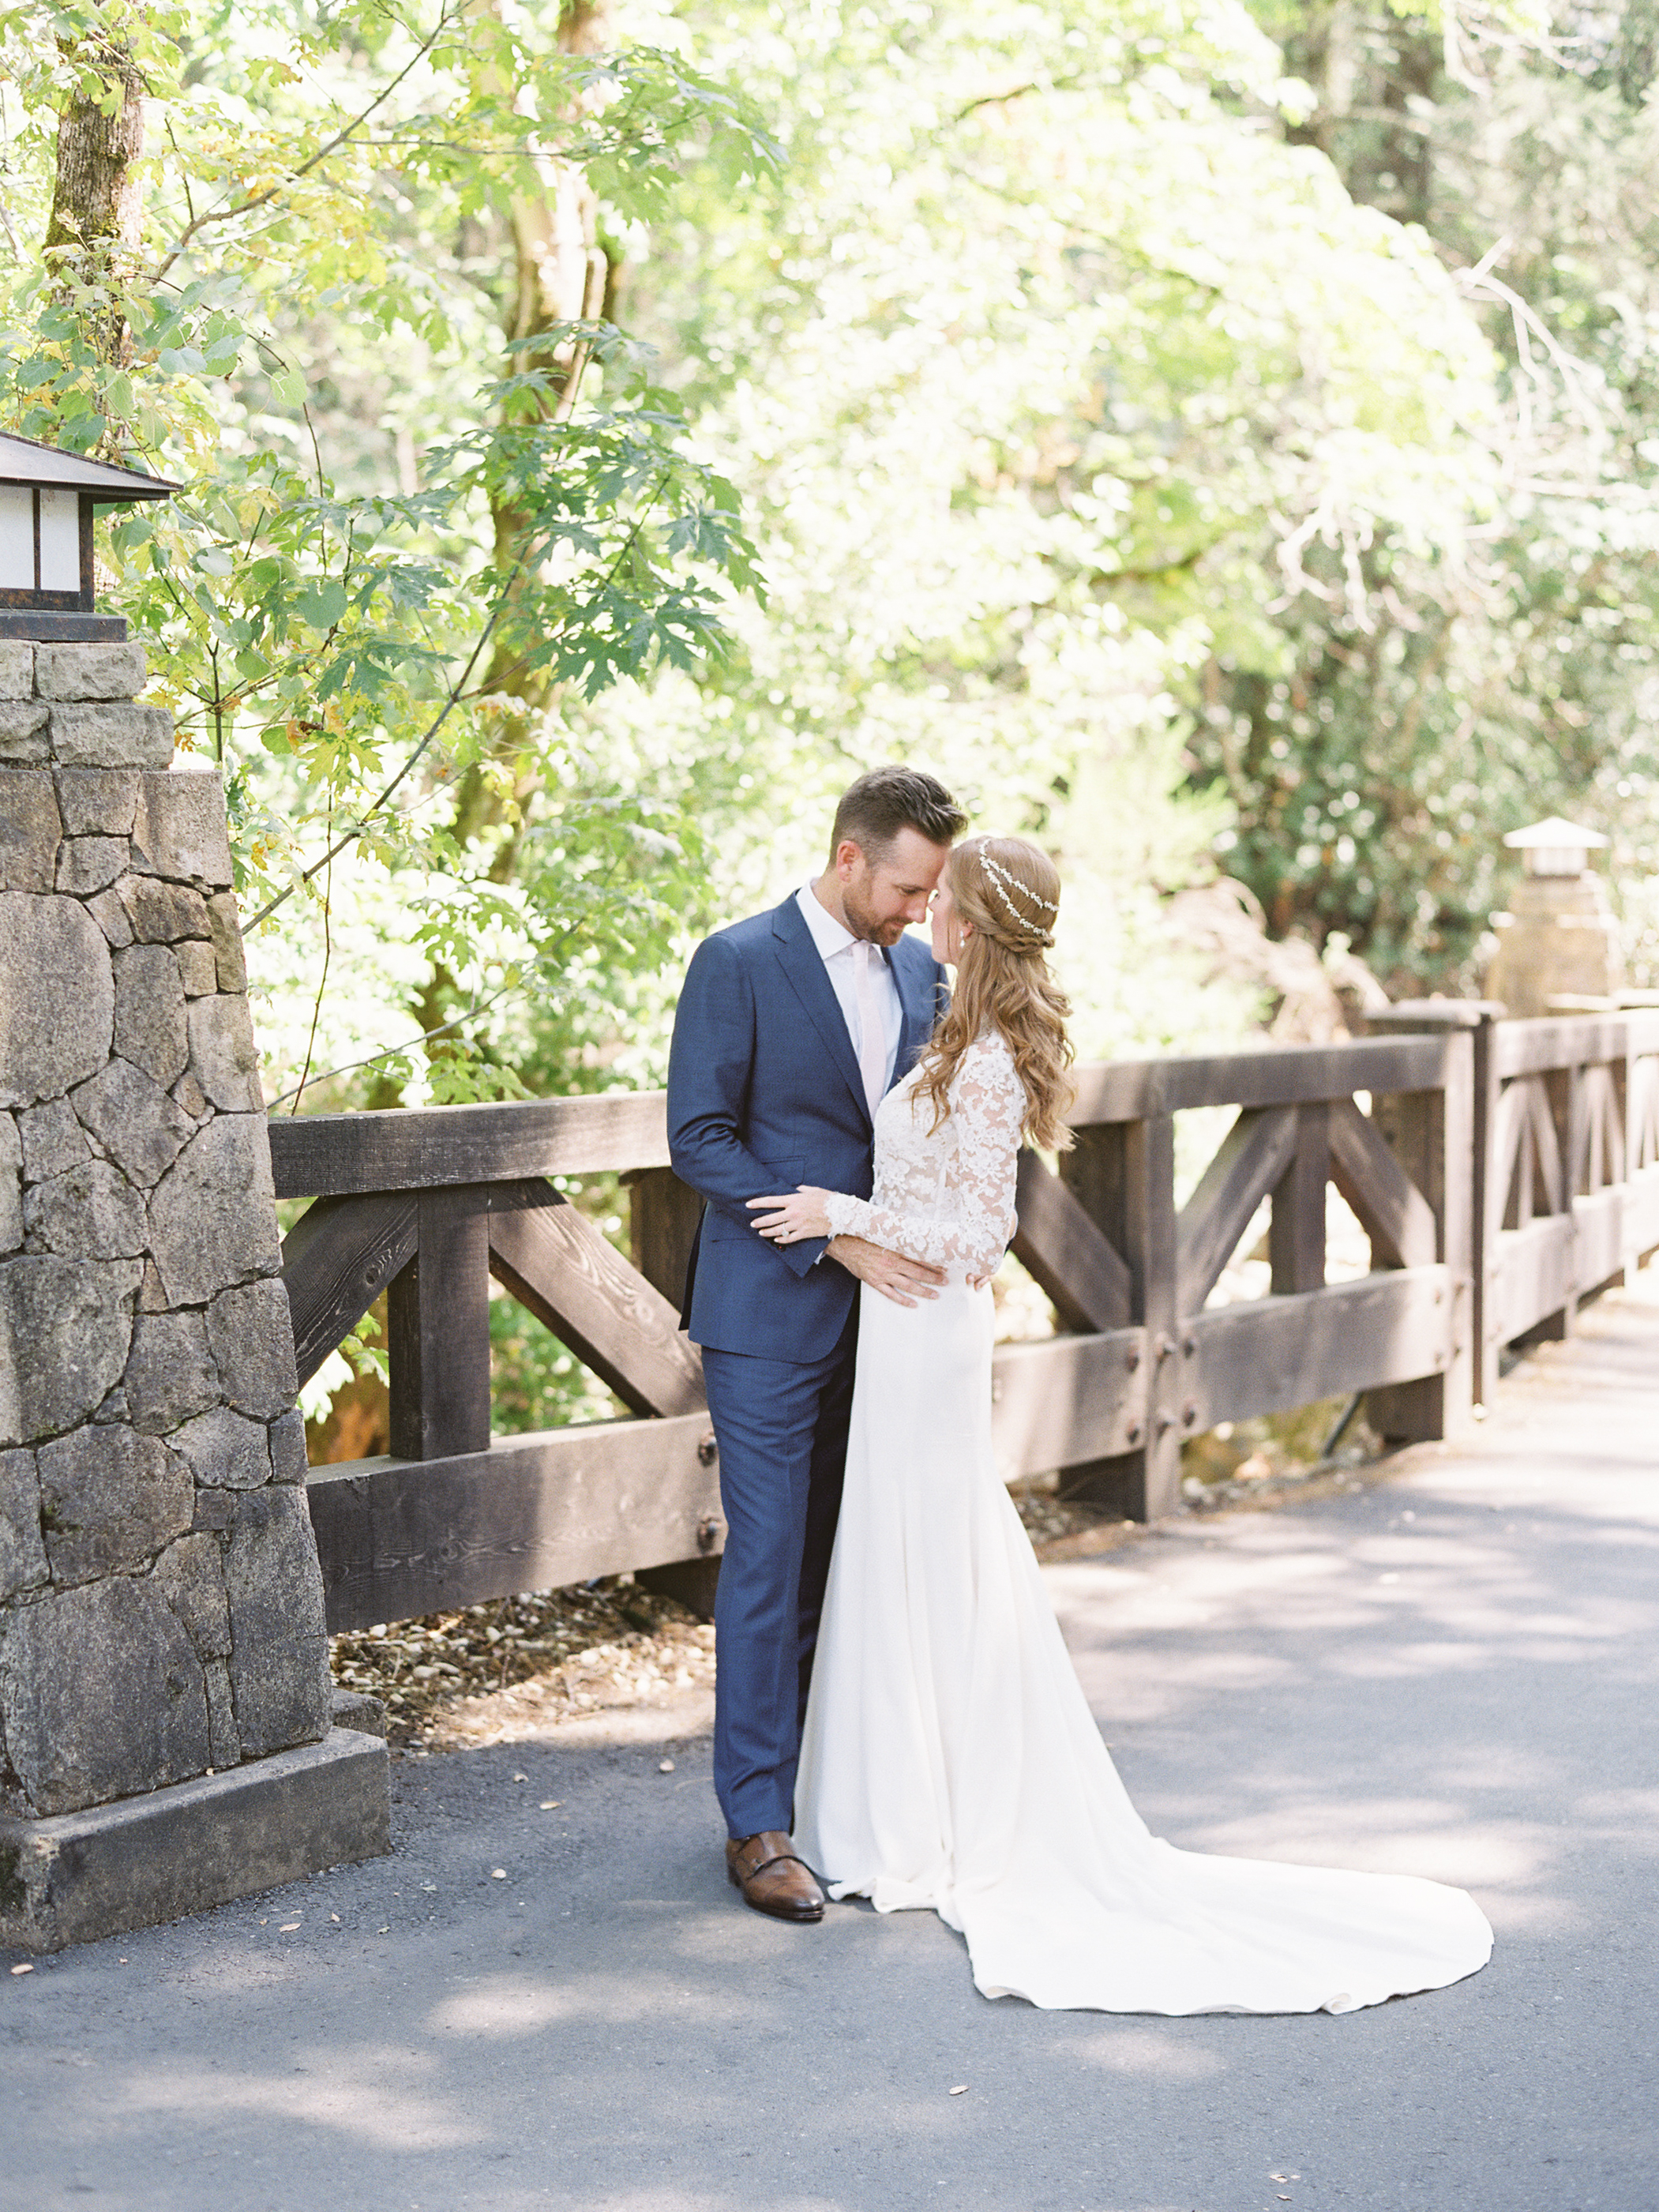 Napa Wedding Photographer - Meghan Mehan Photography _008.jpg